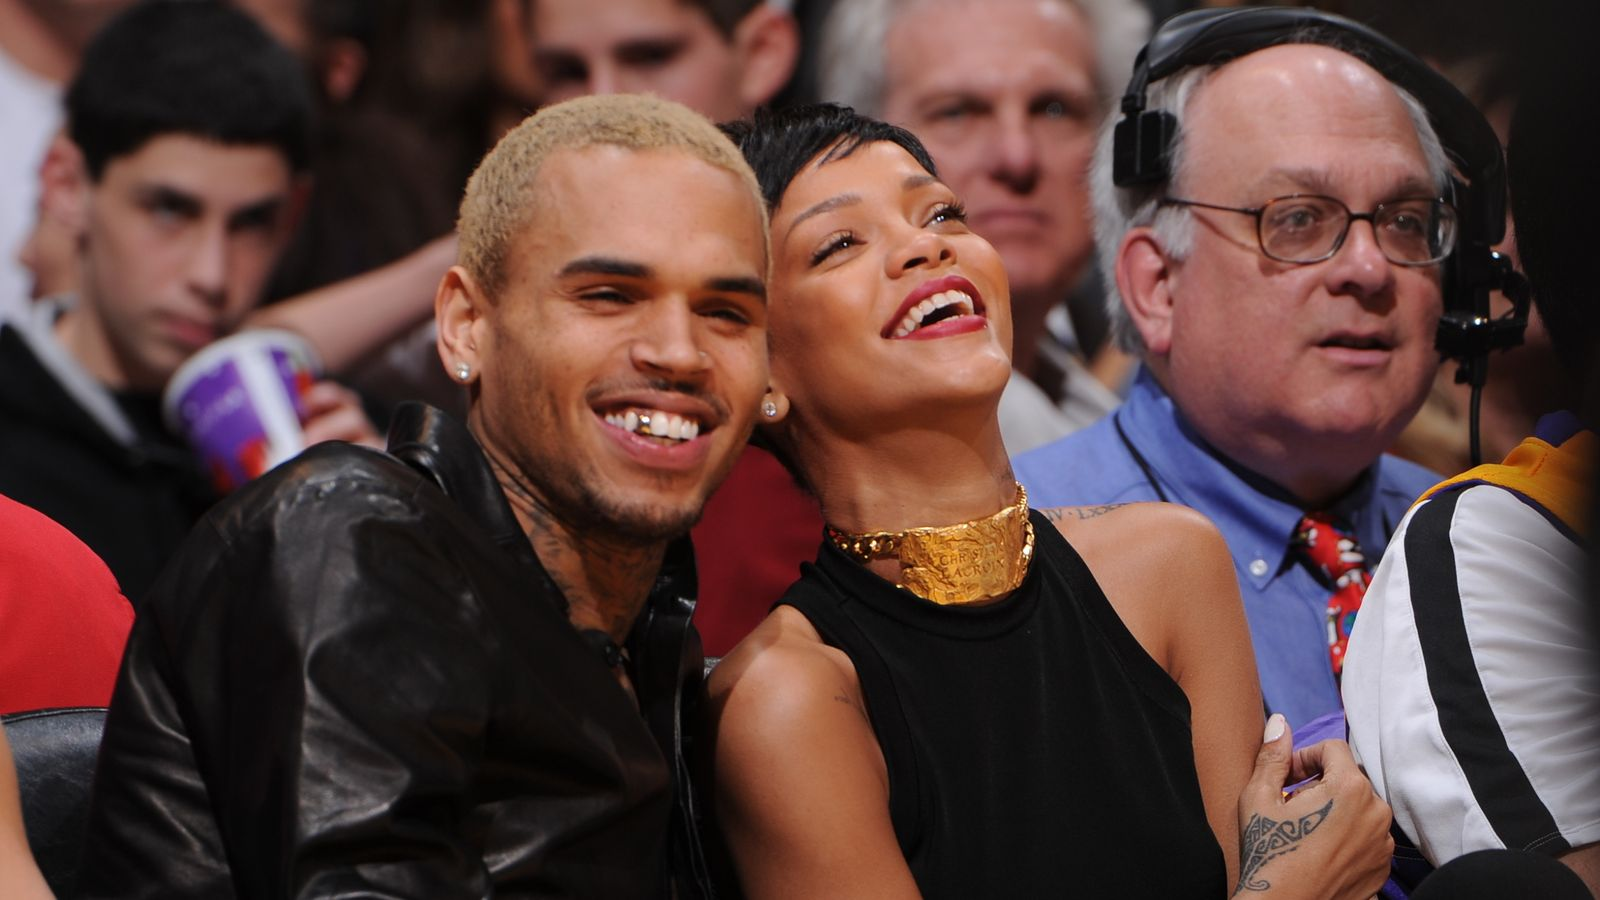 Chris Brown restrained from ex-girlfriend after abuse